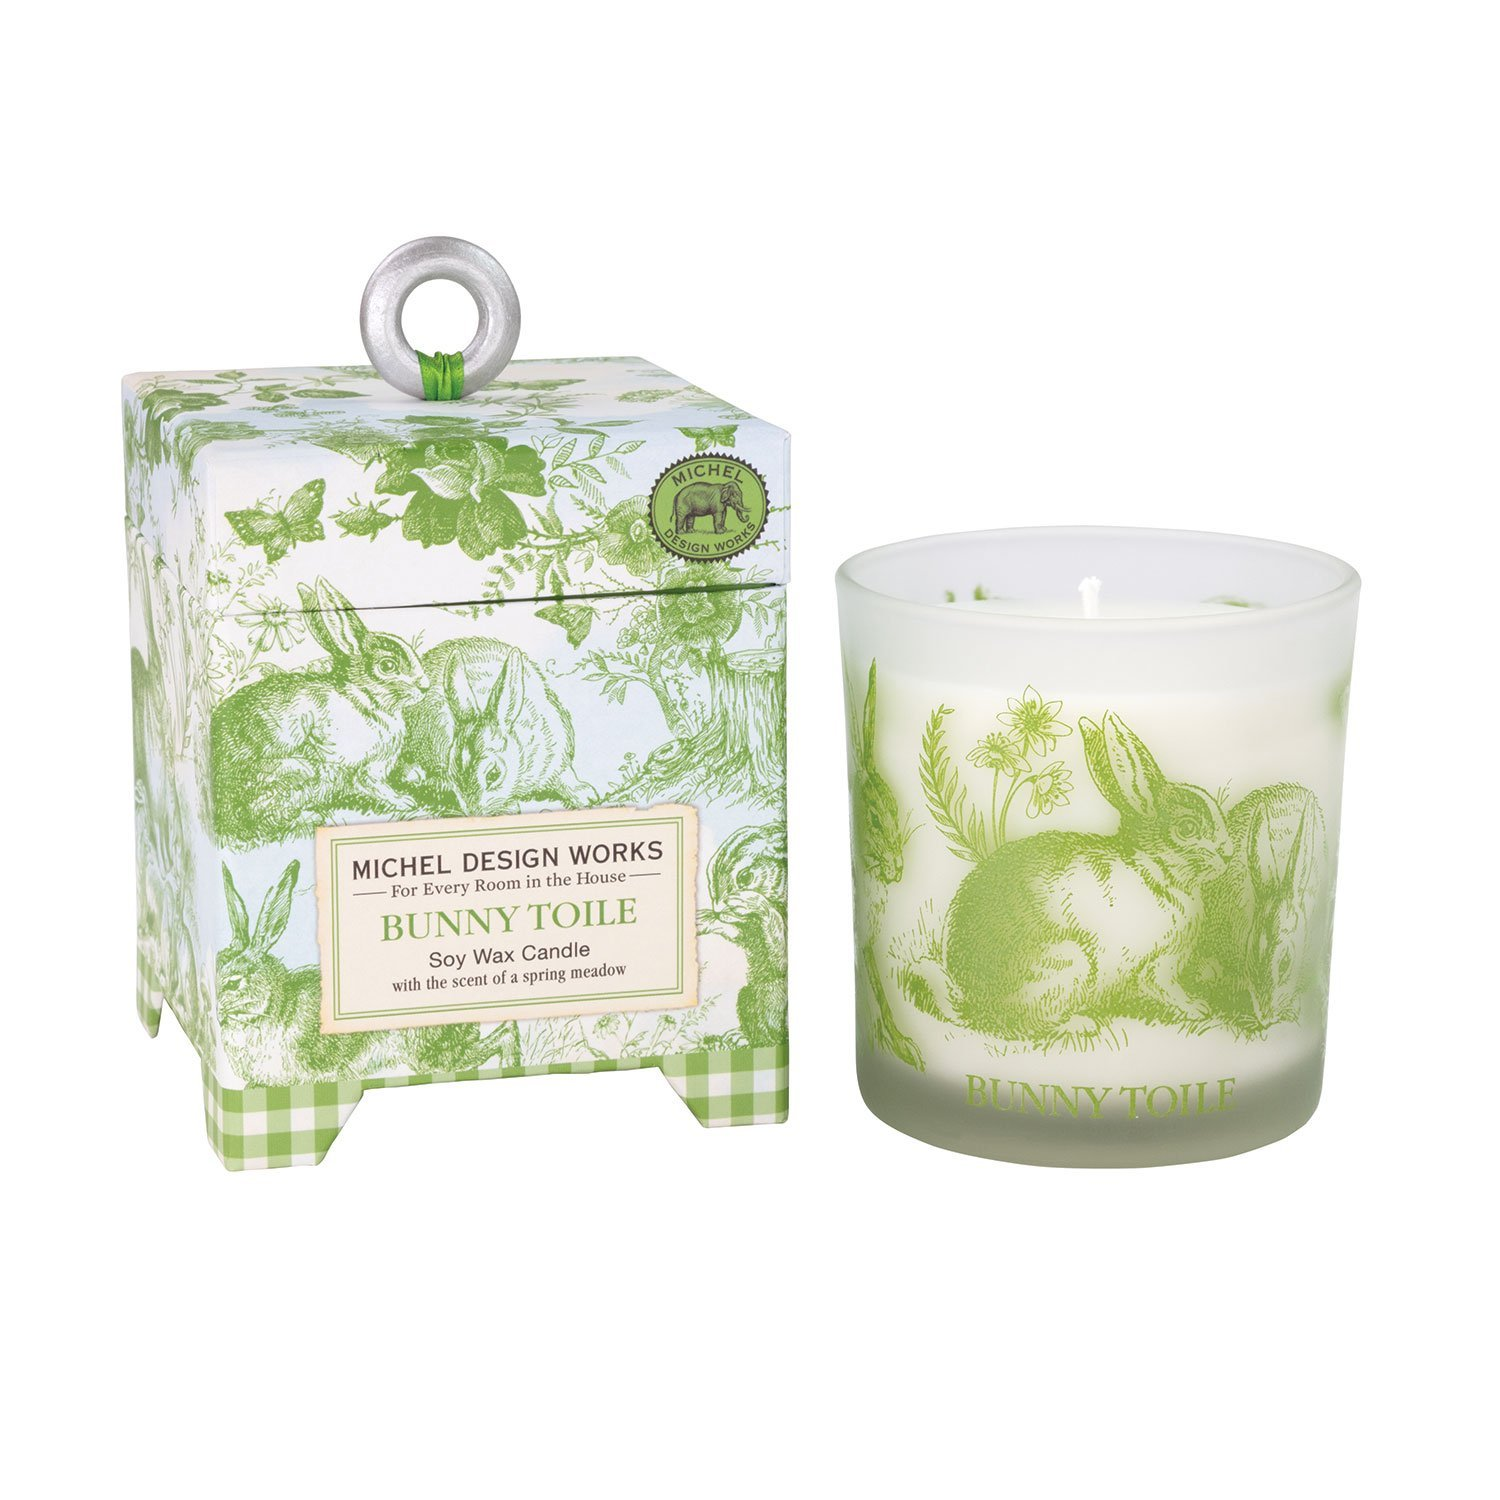 Image of Bunny Toile Soy Wax Candle